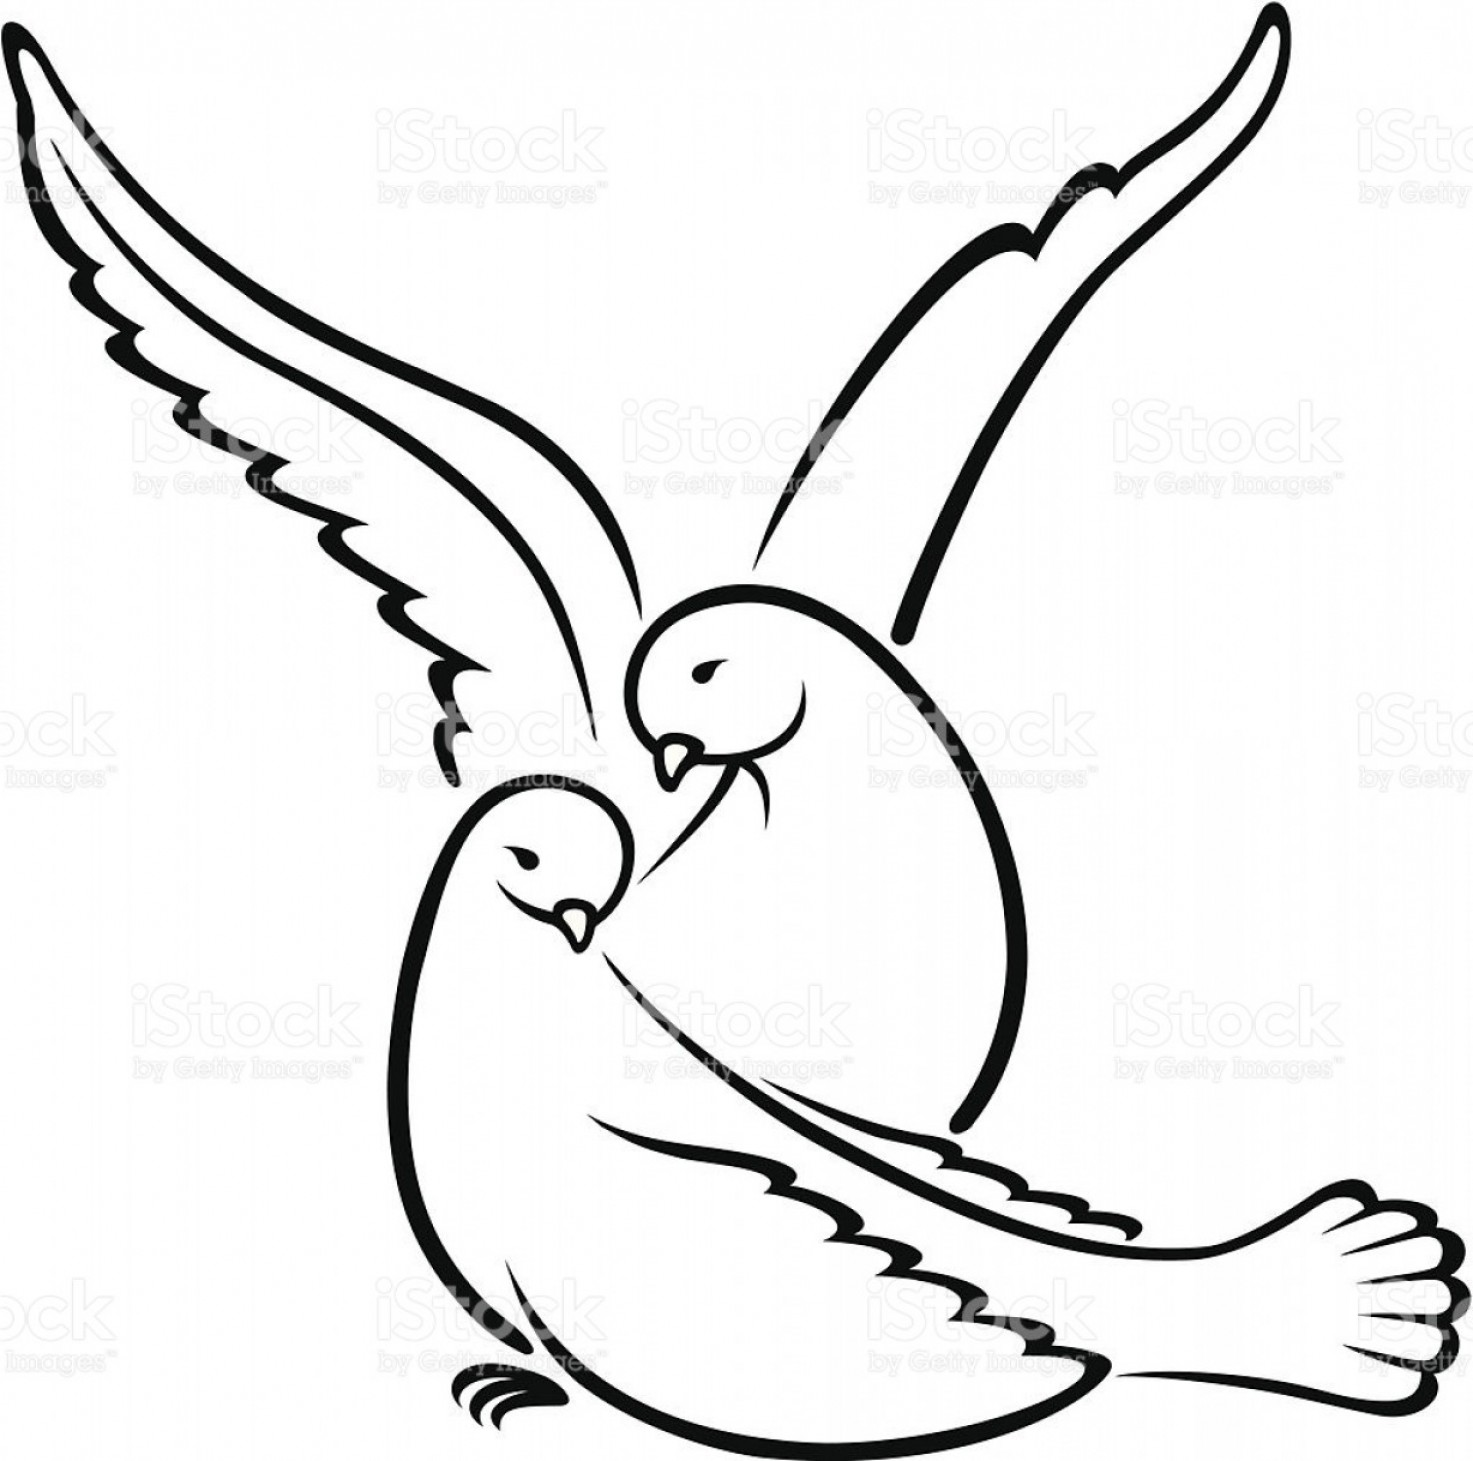 Love doves drawing clipart black and white vector White Dove Drawing at PaintingValley.com | Explore ... vector